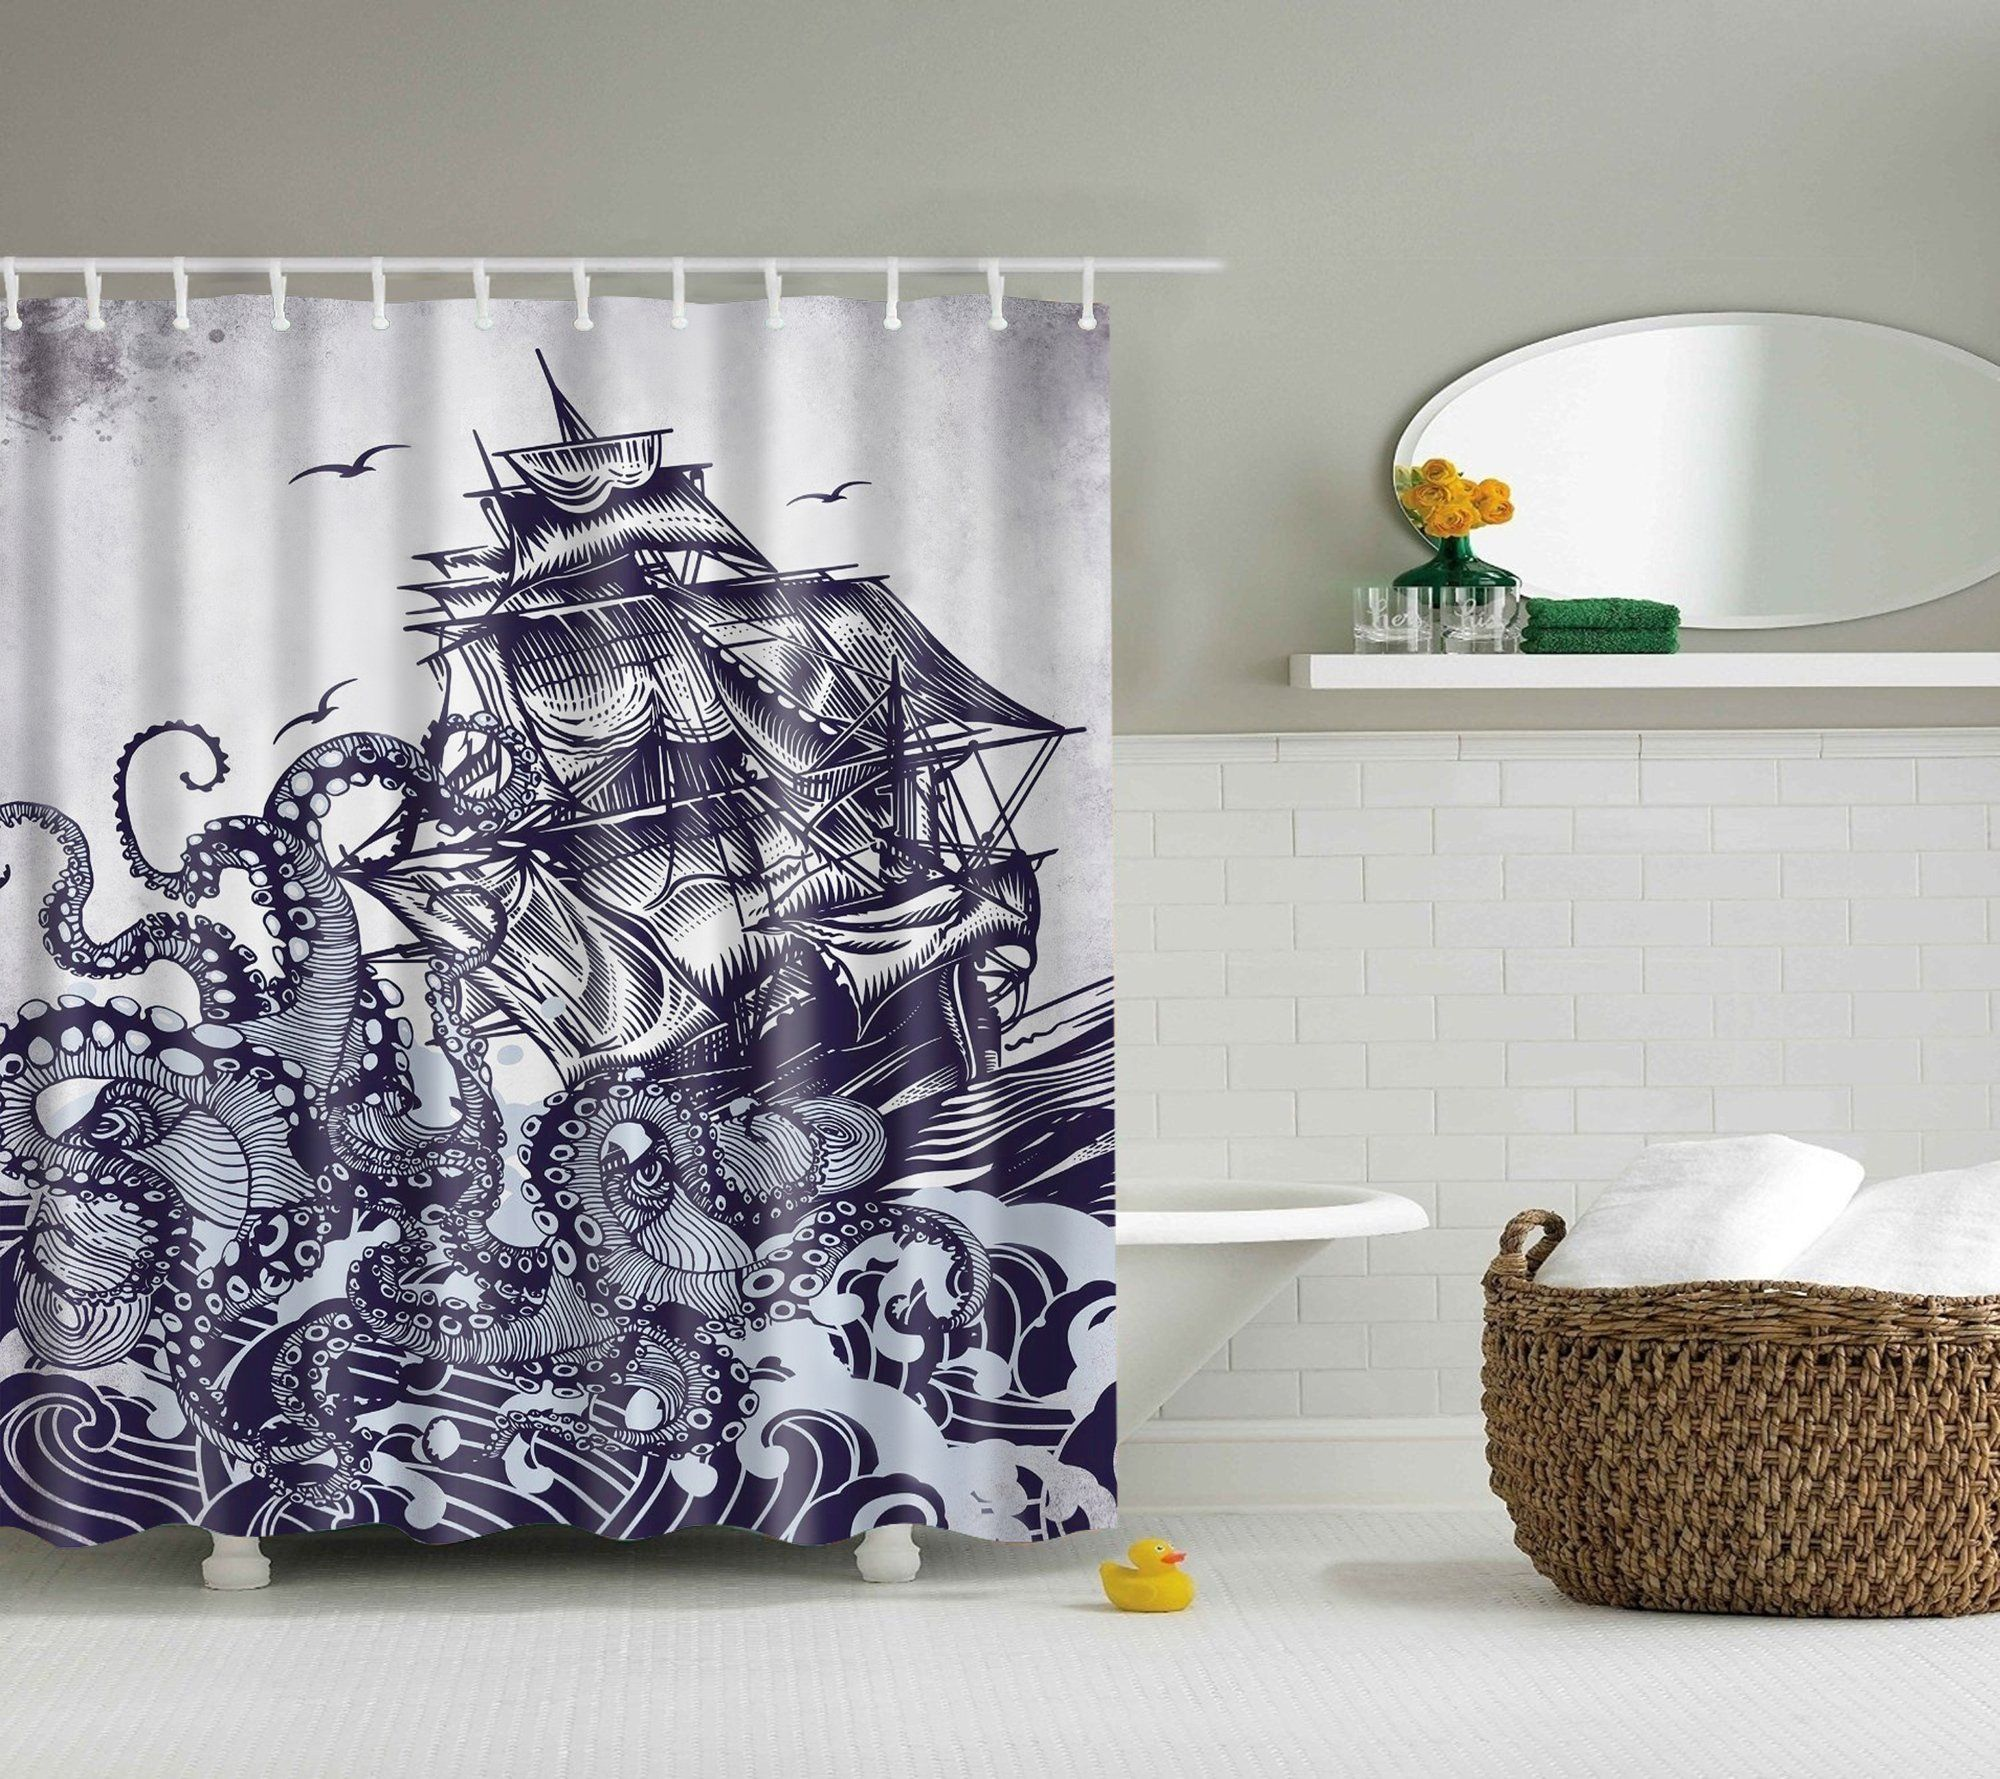 Awesome Kraken with Sailboat Octopus Shower Curtain Bathroom Decor